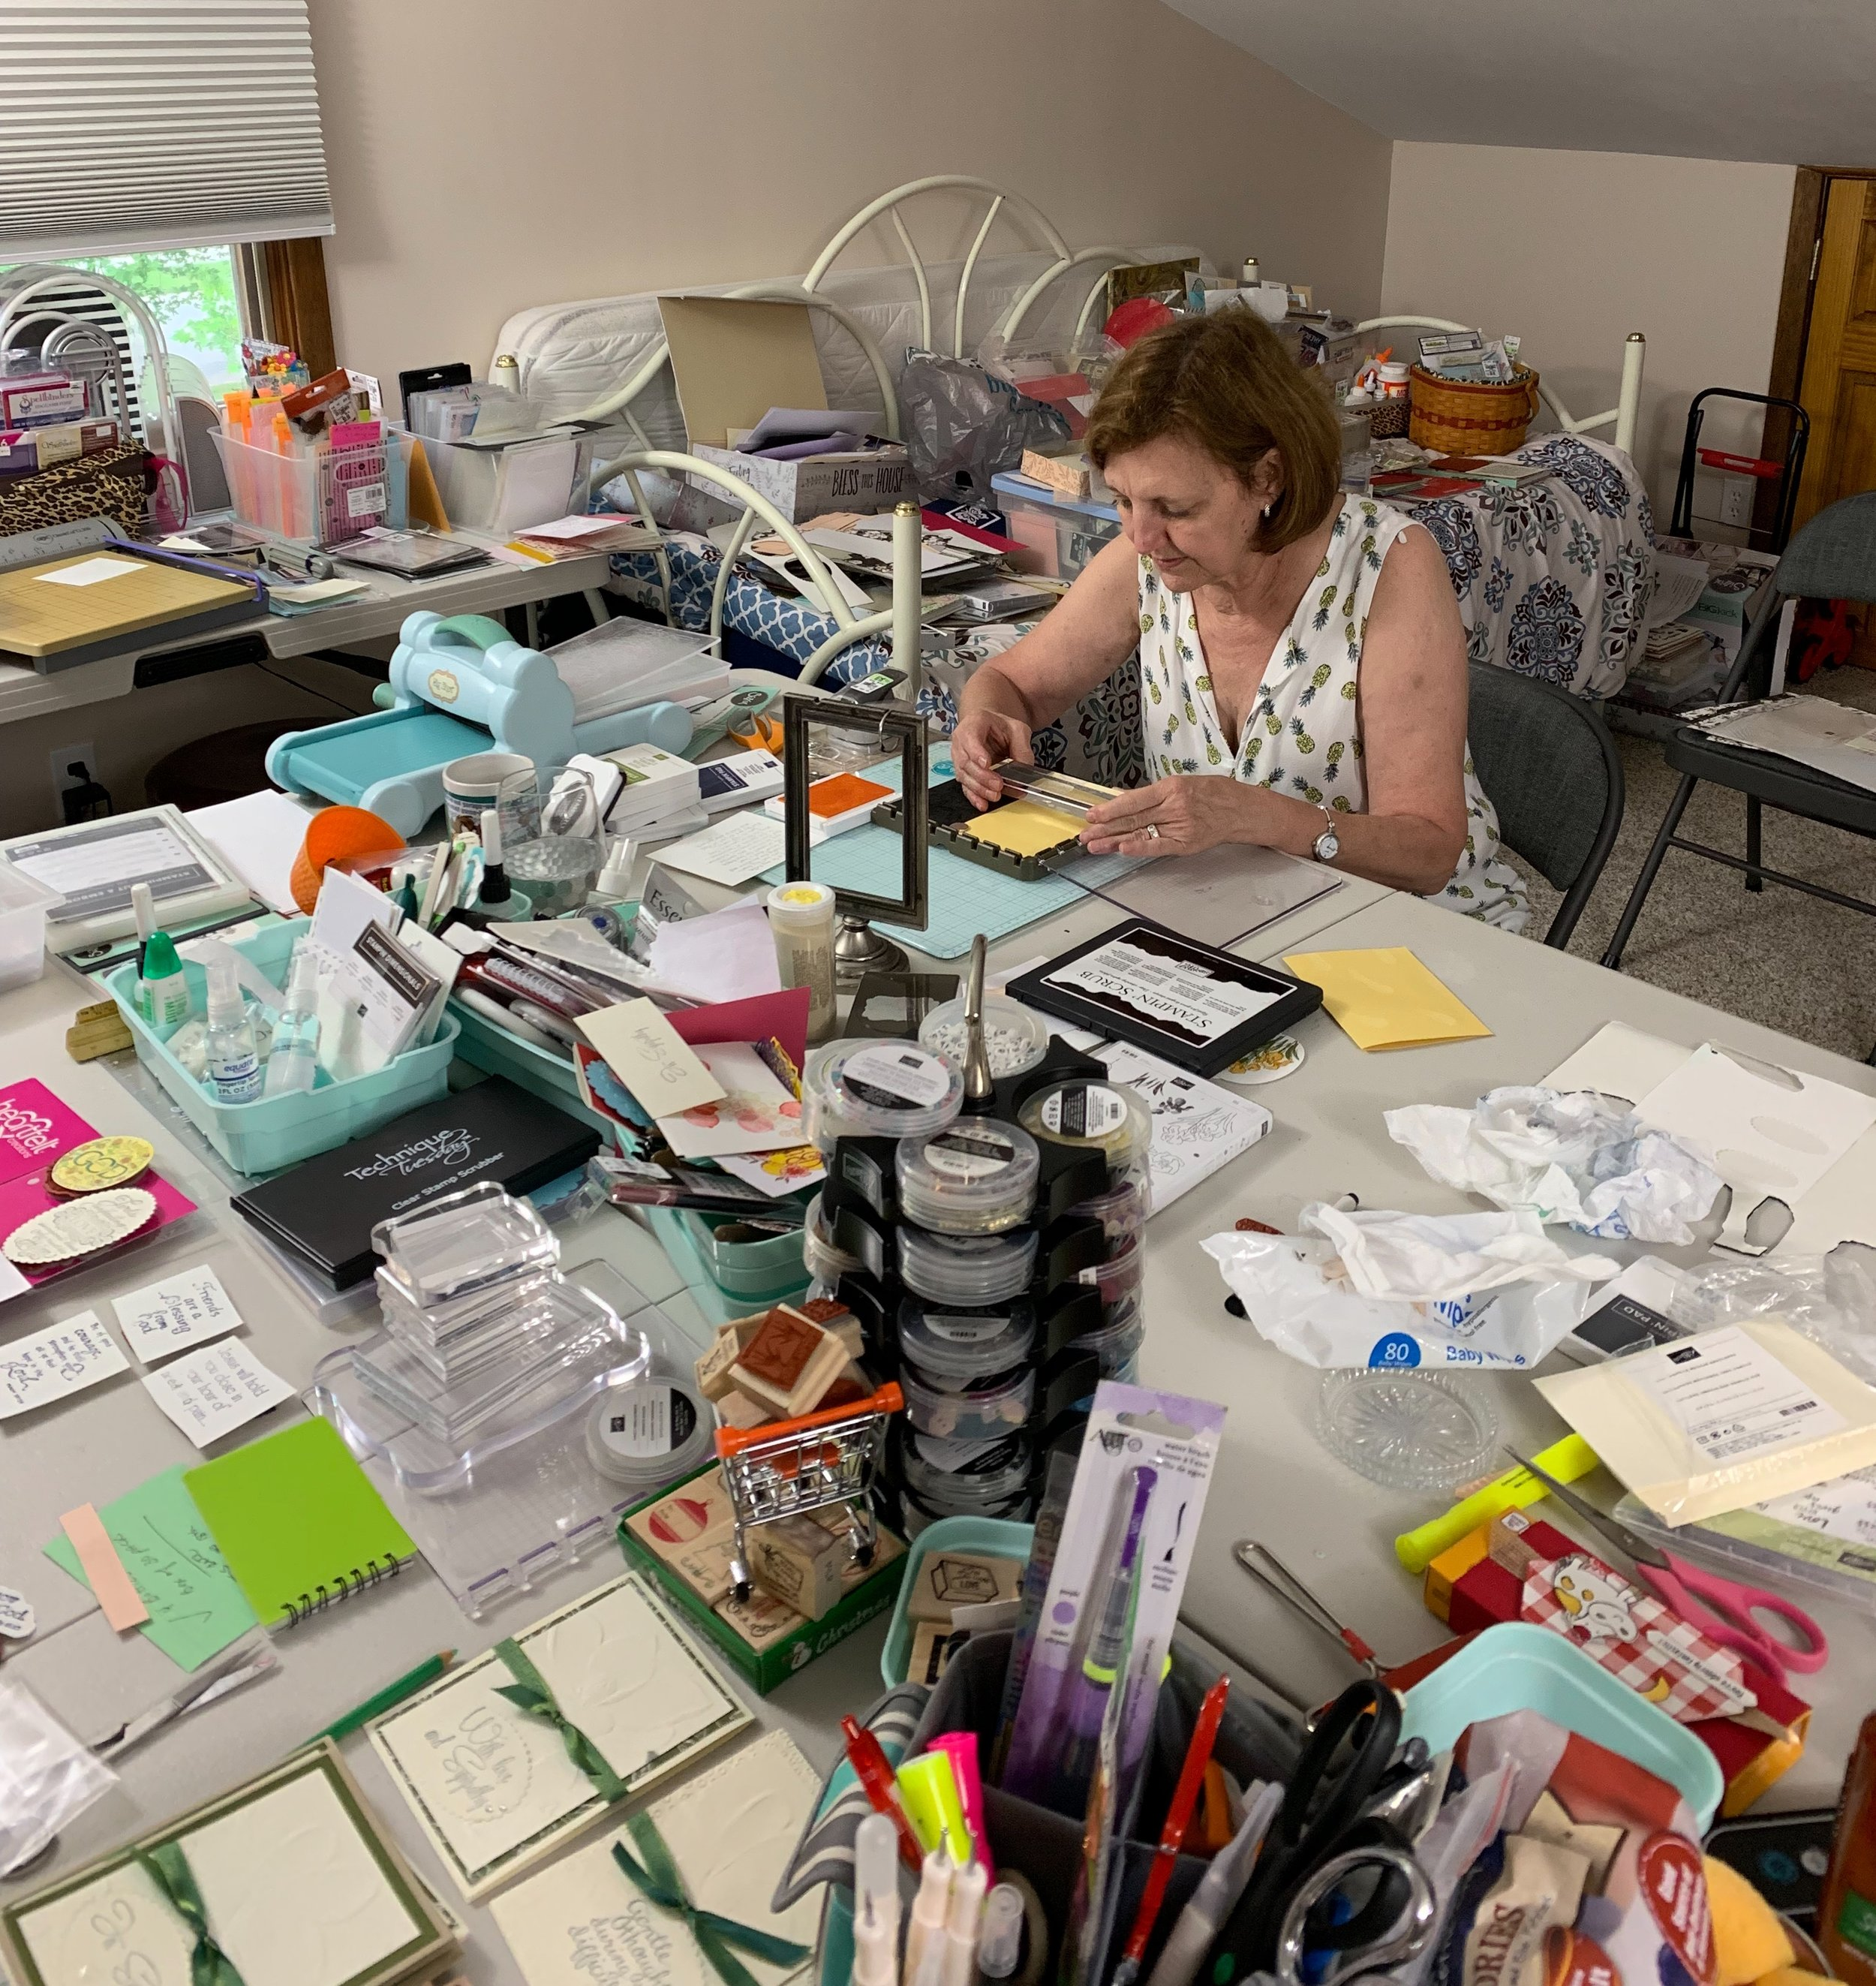 Here is Pamela in her studio- art room. She is very excited about a renewed enthusiasm about her card ministry. She prays over each card and the person receiving the card. She feels that card-making is a lost art and is especially blessed by the practice of creating prayer cards.